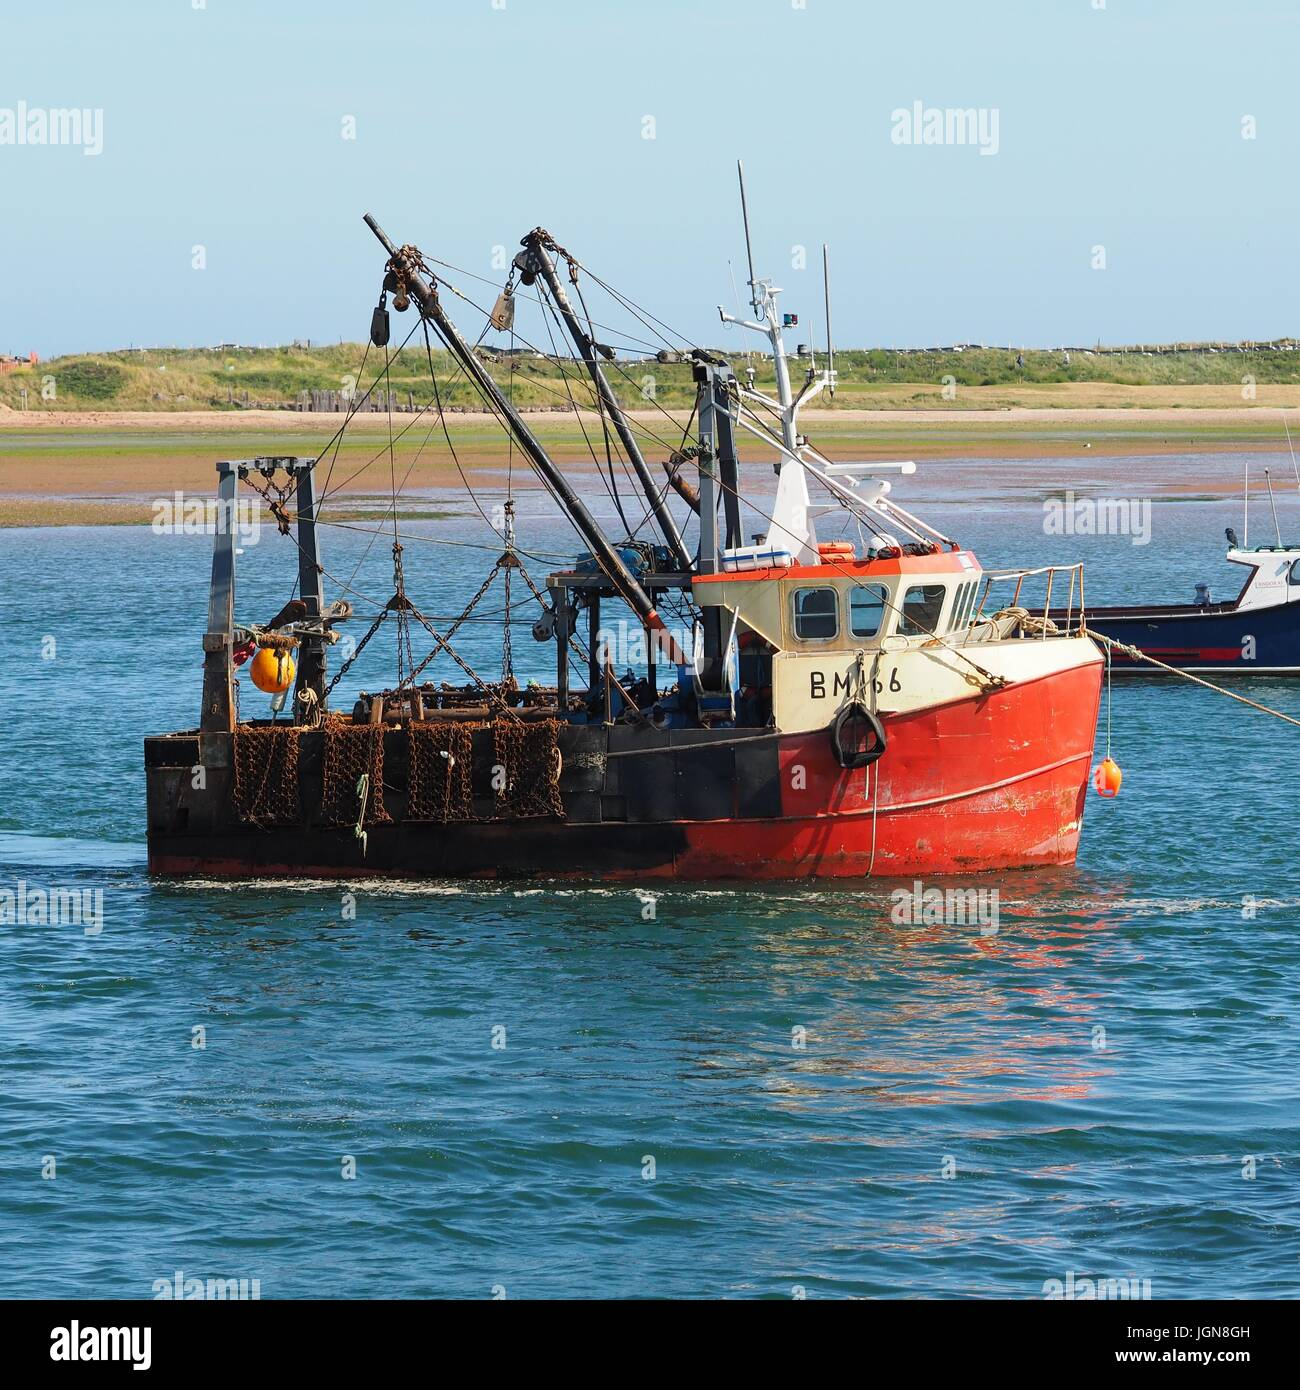 A scallop dredger moored up in the river Exe - Stock Image